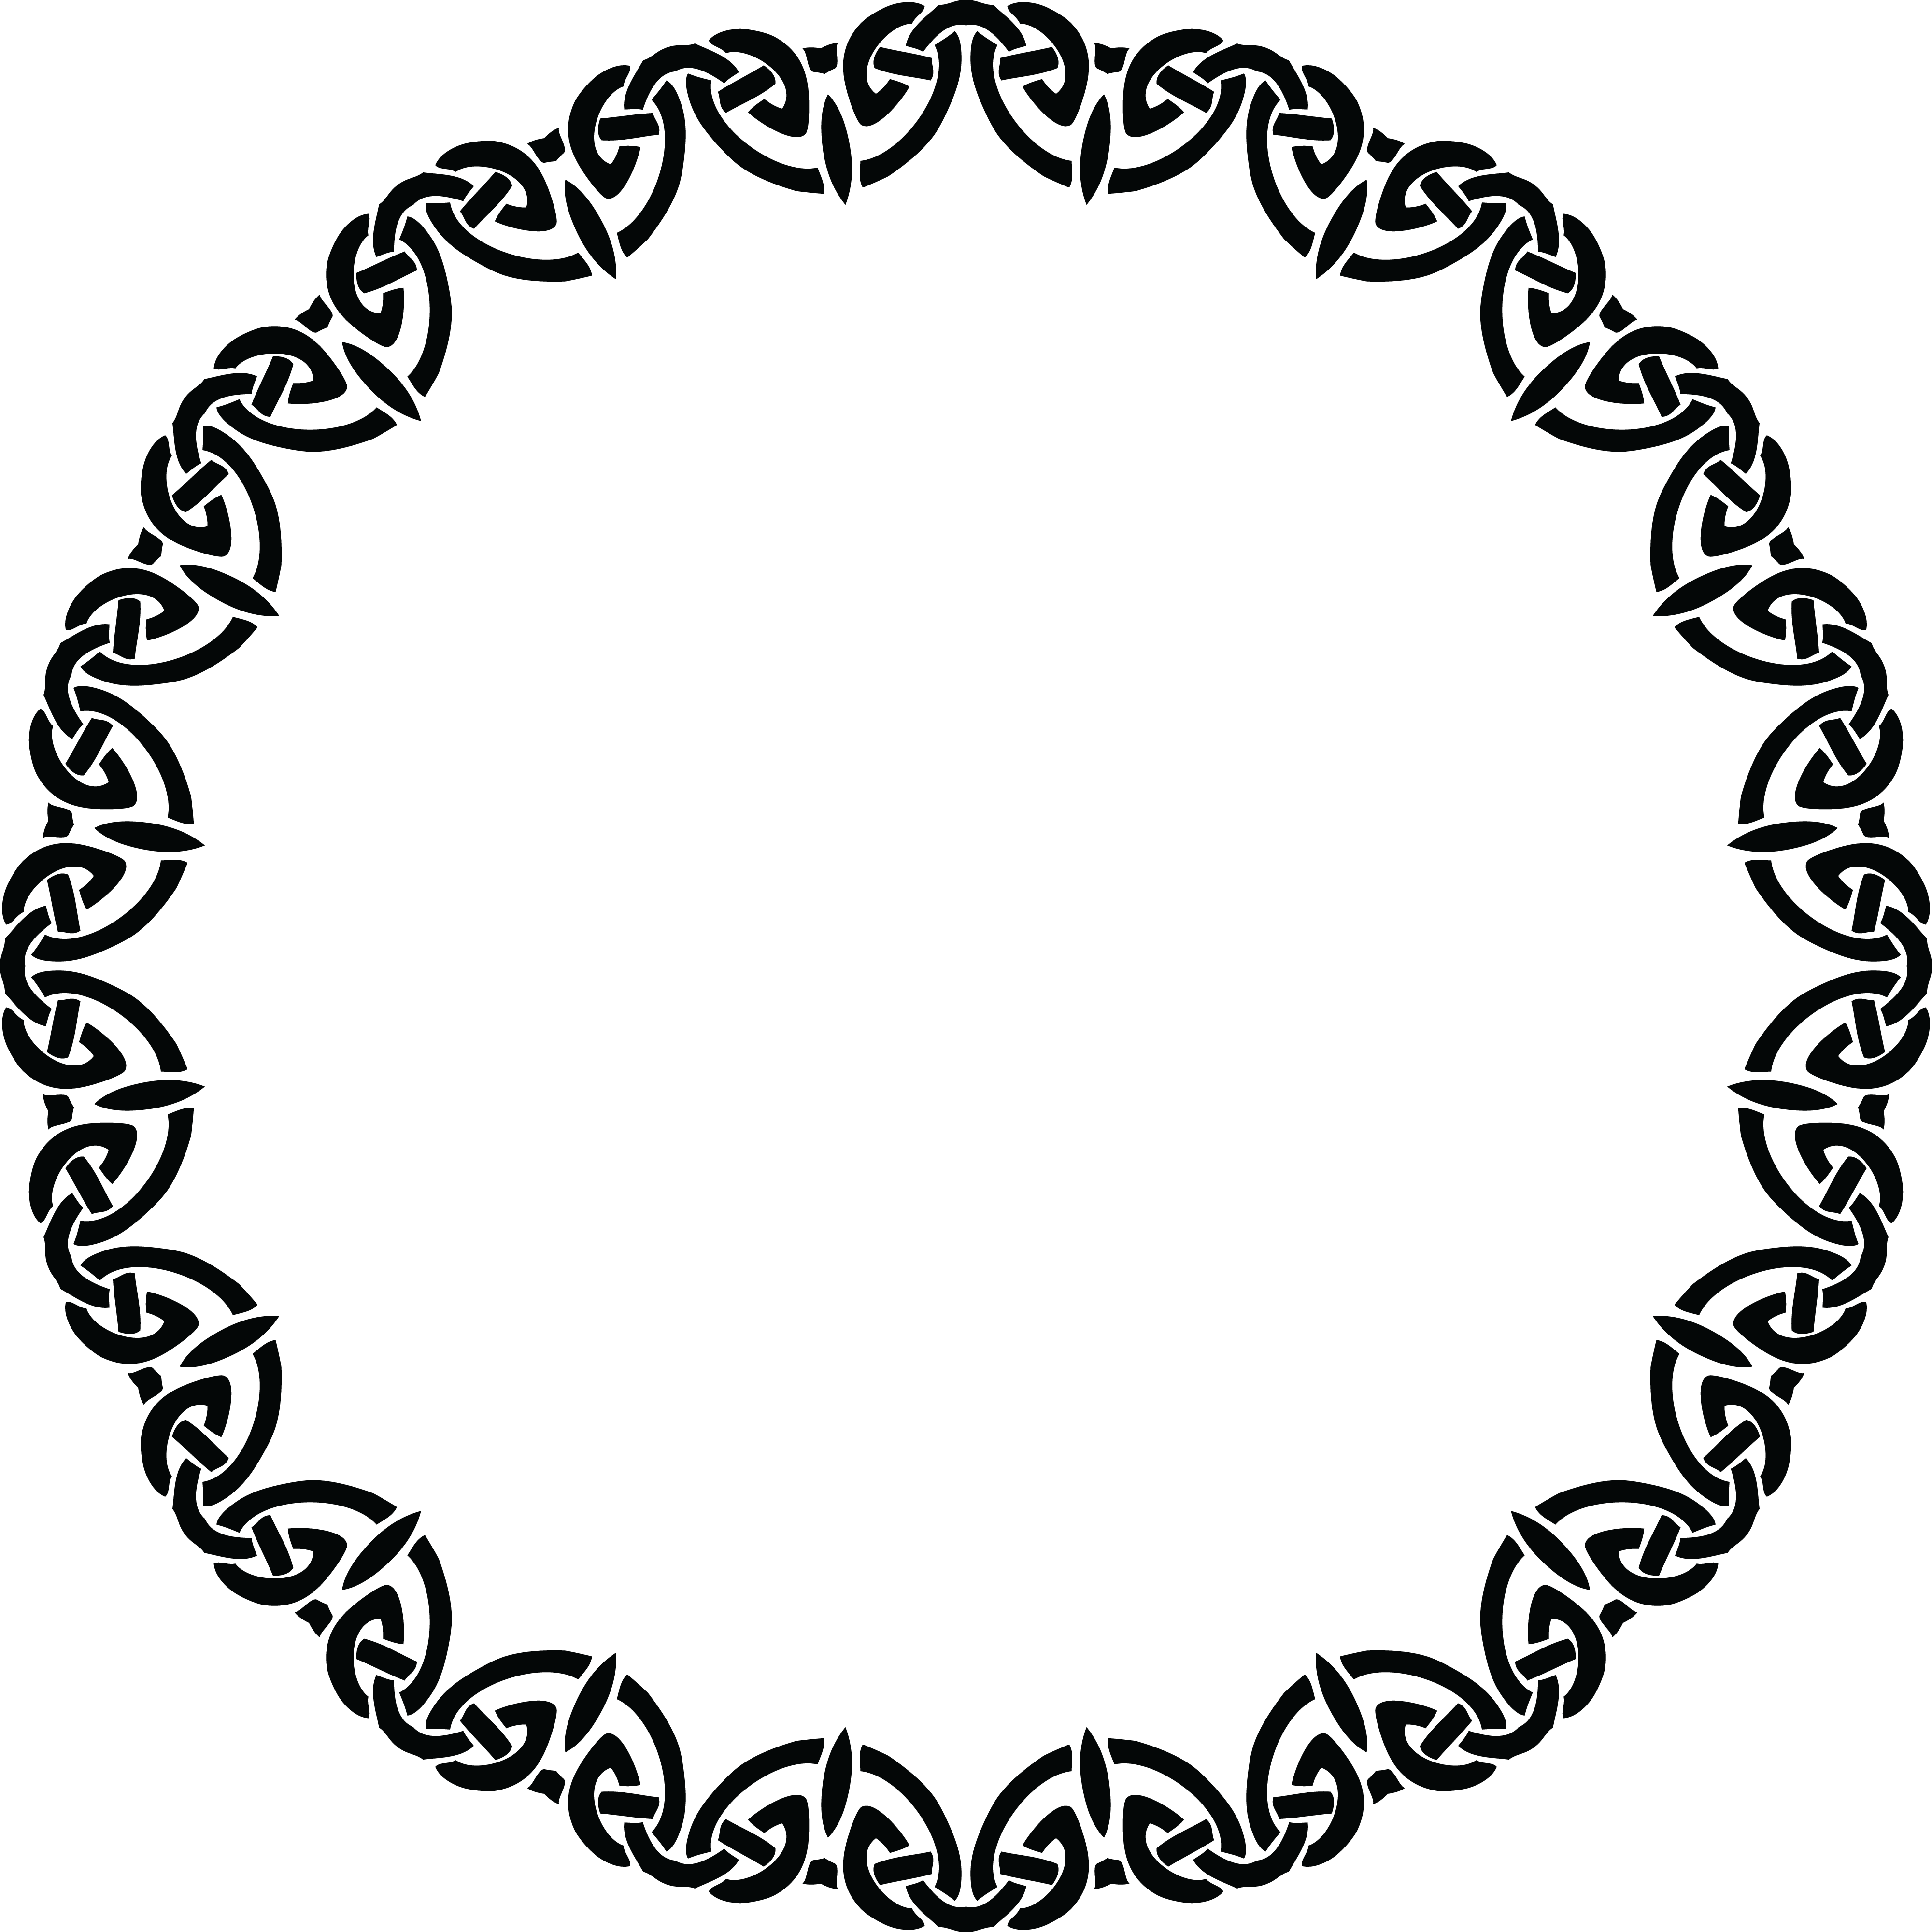 Vectorial drawing circle. Collection of free designed